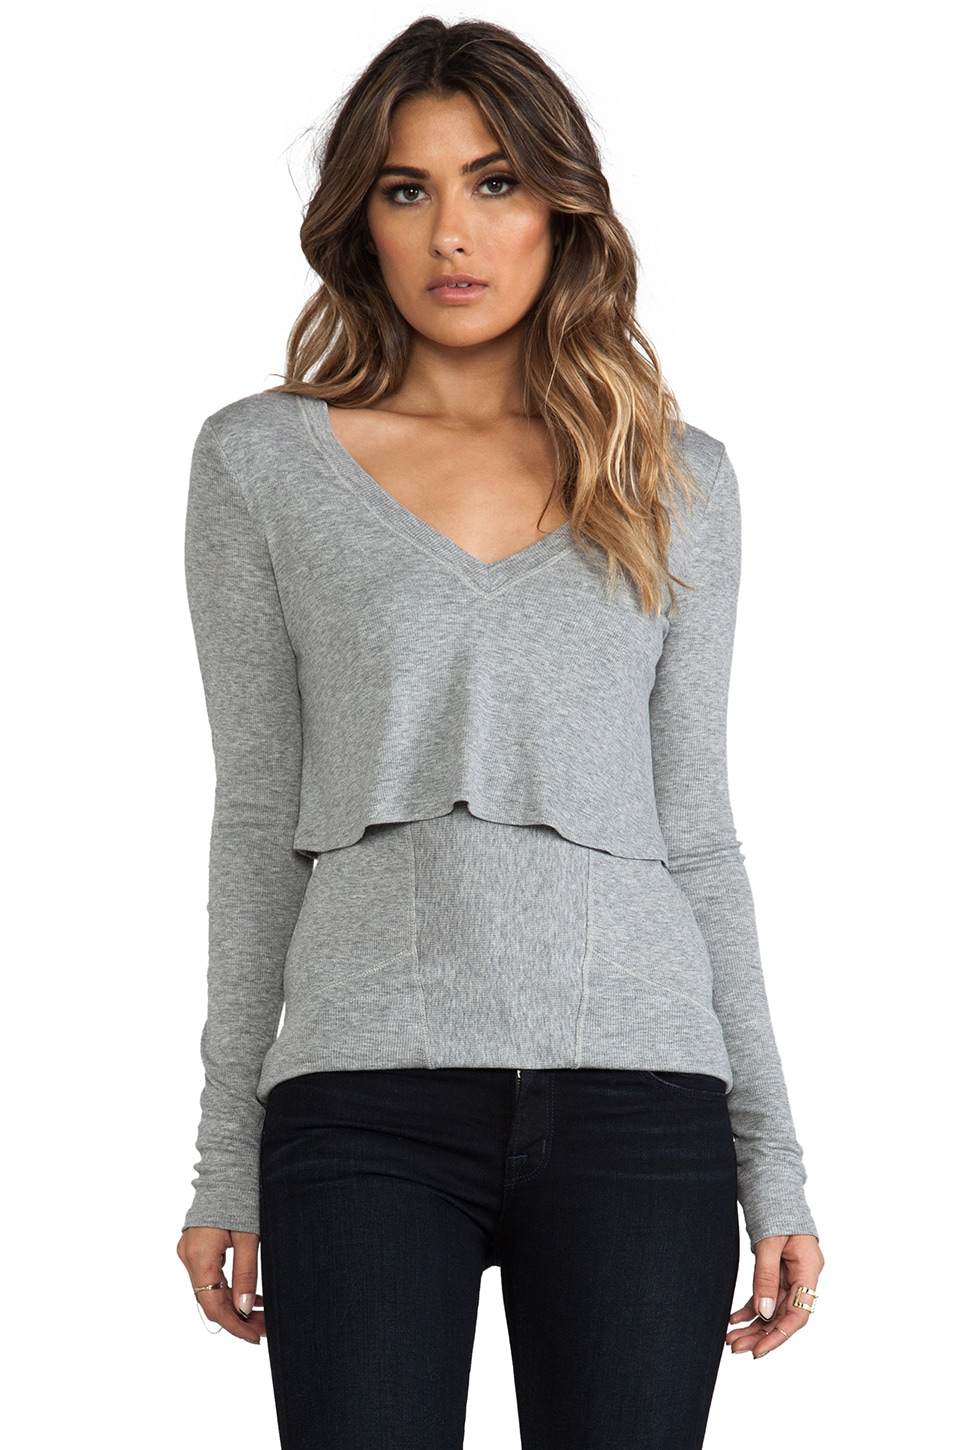 Heather Long Sleeve Double Tee in Light Heather Grey